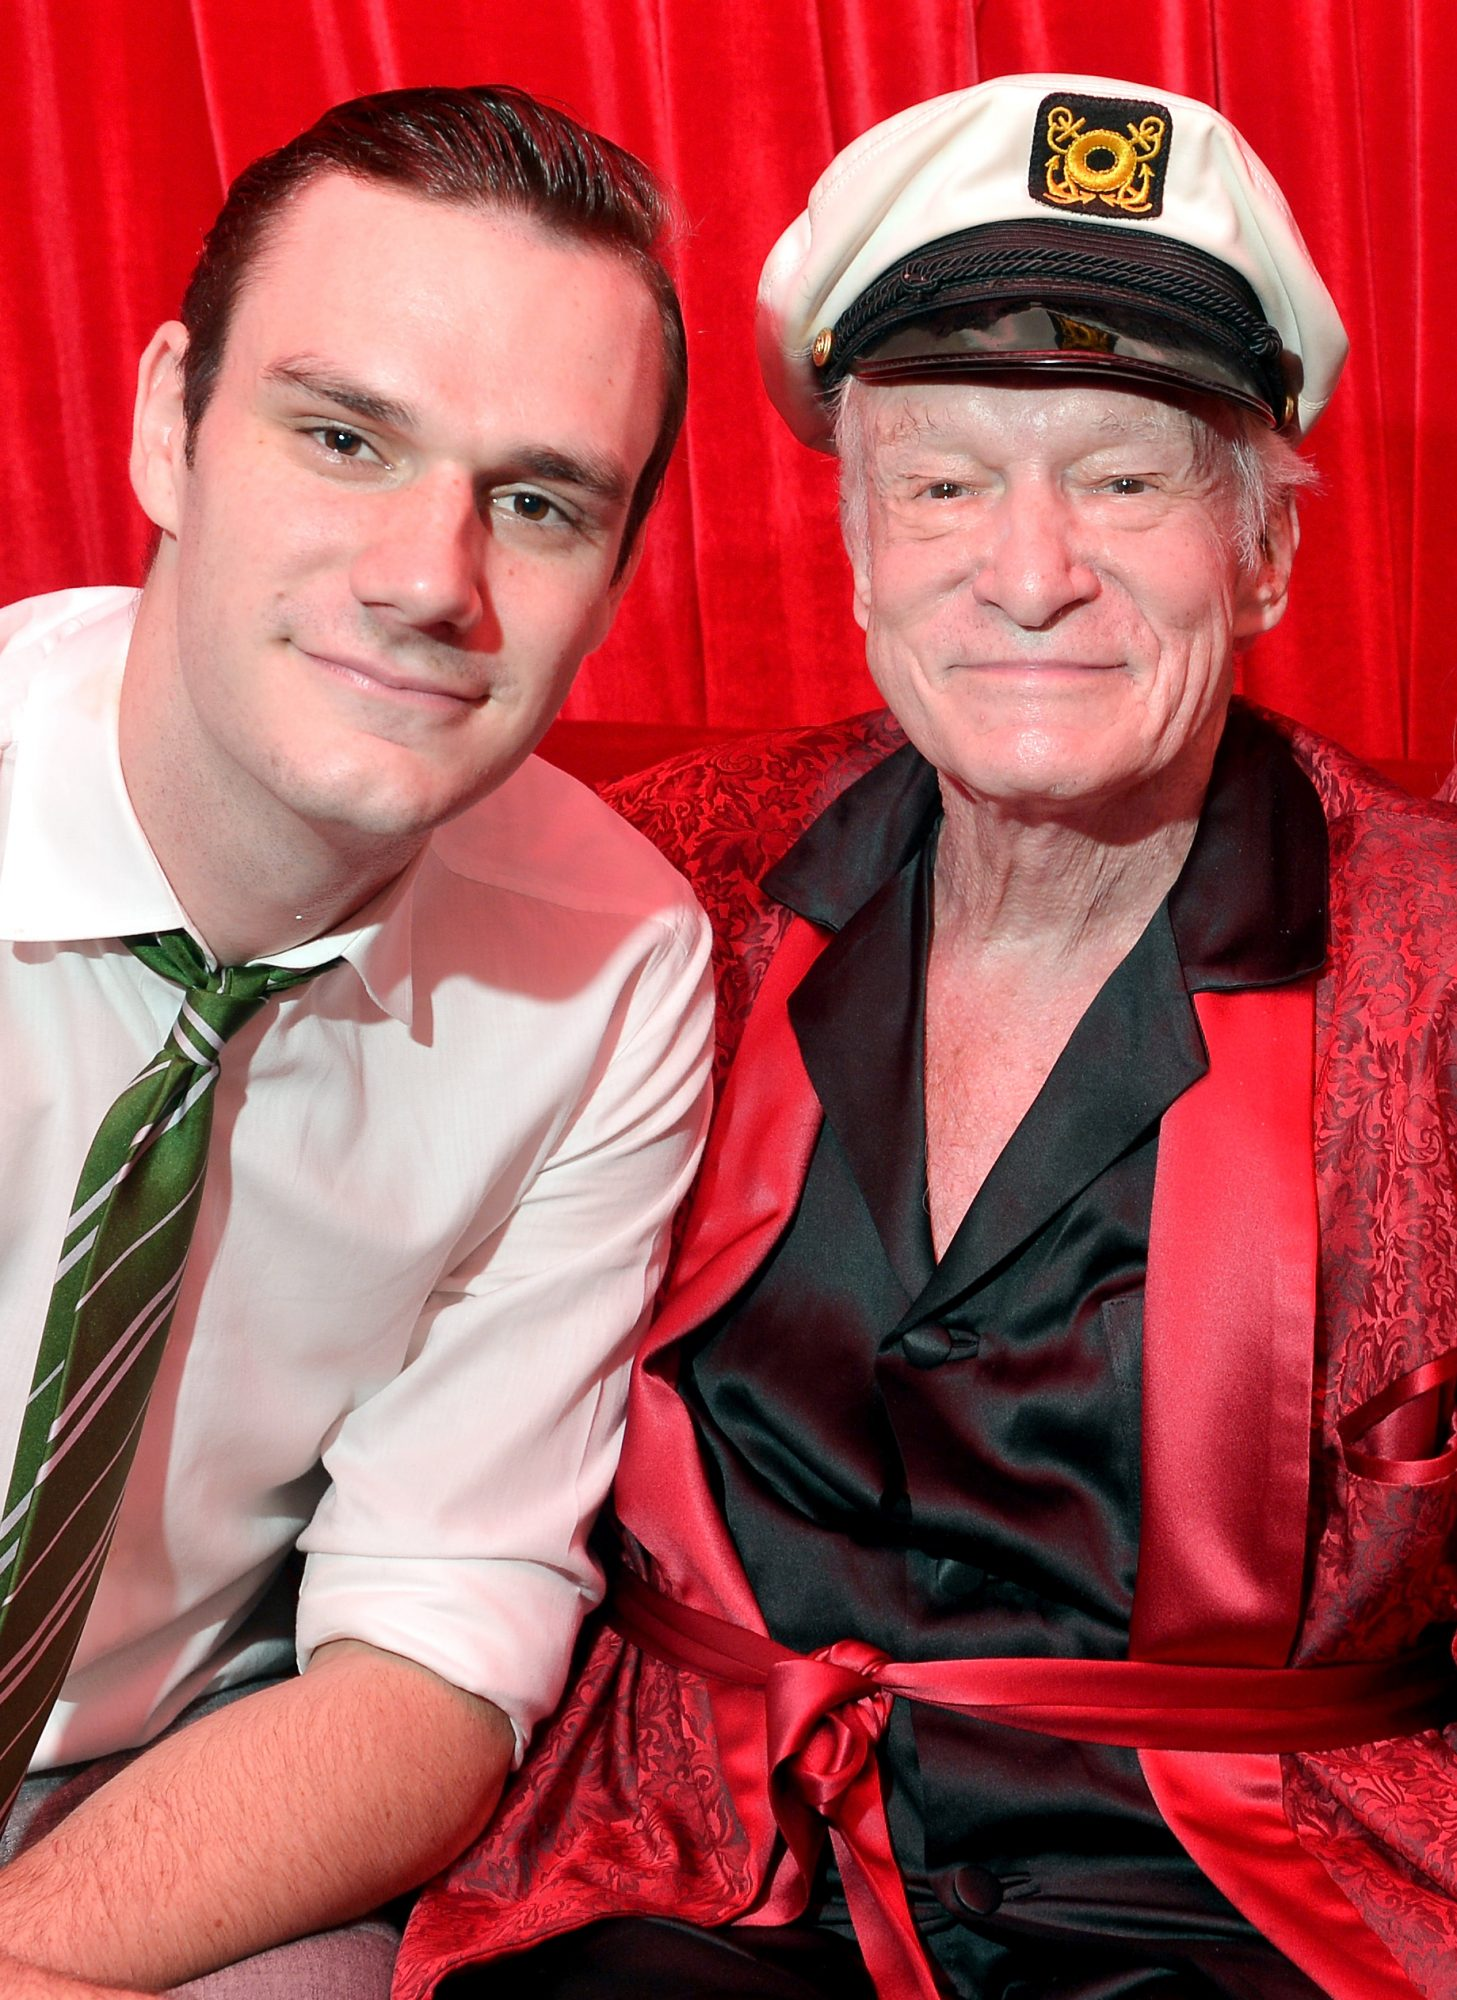 Hugh Hefner's Son Cooper Makes a Moving Tribute to His Father